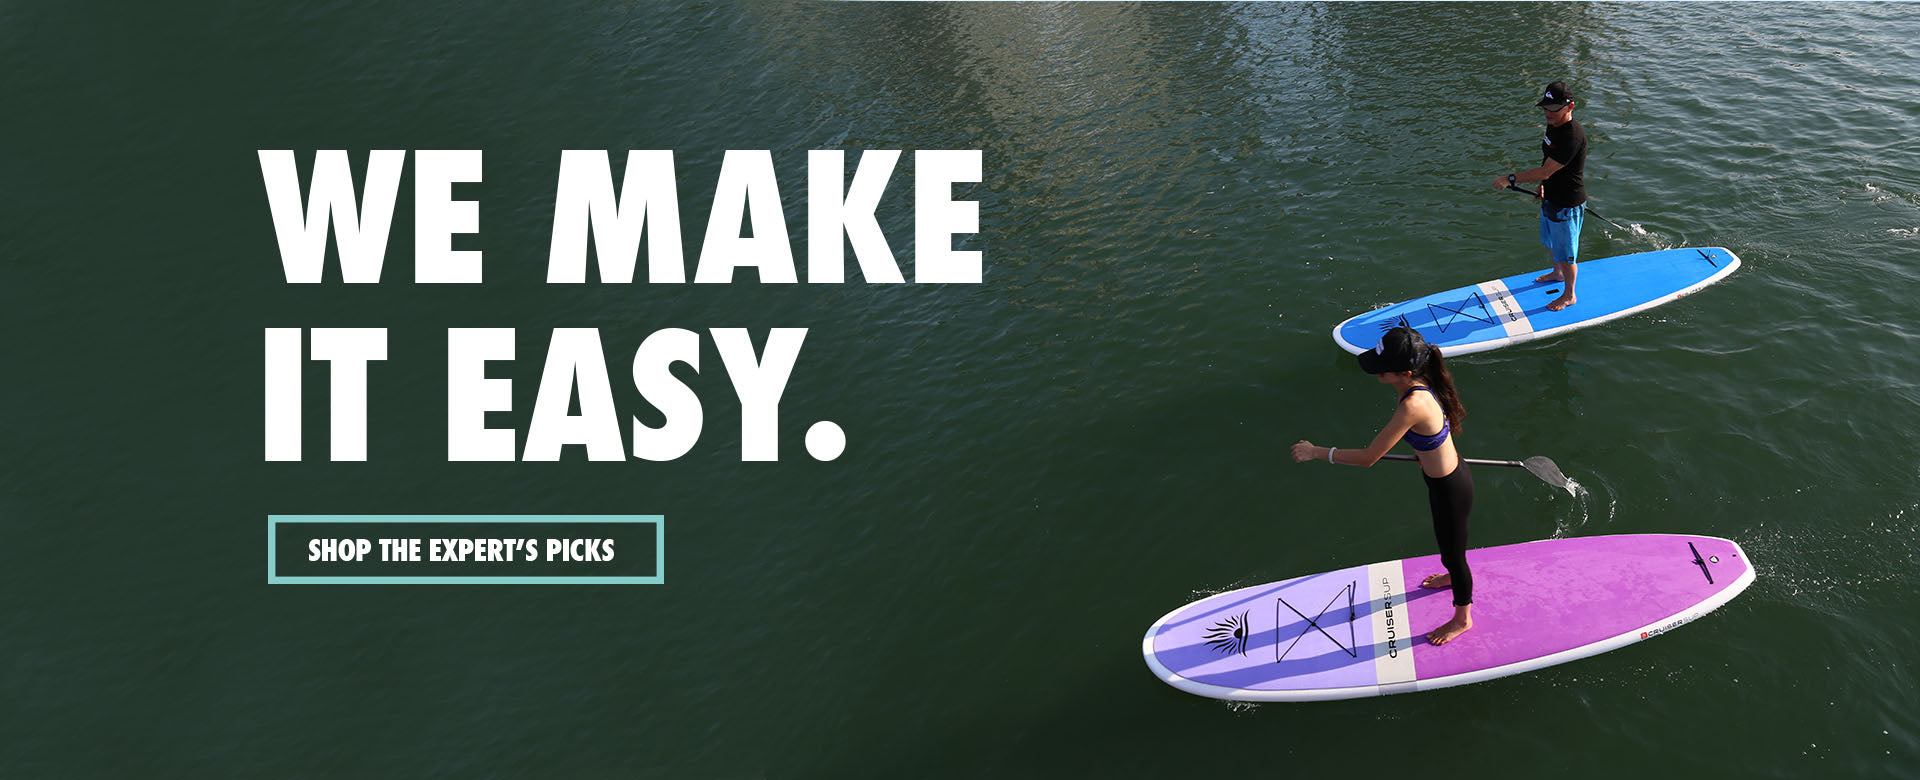 paddleboard direct make it easy